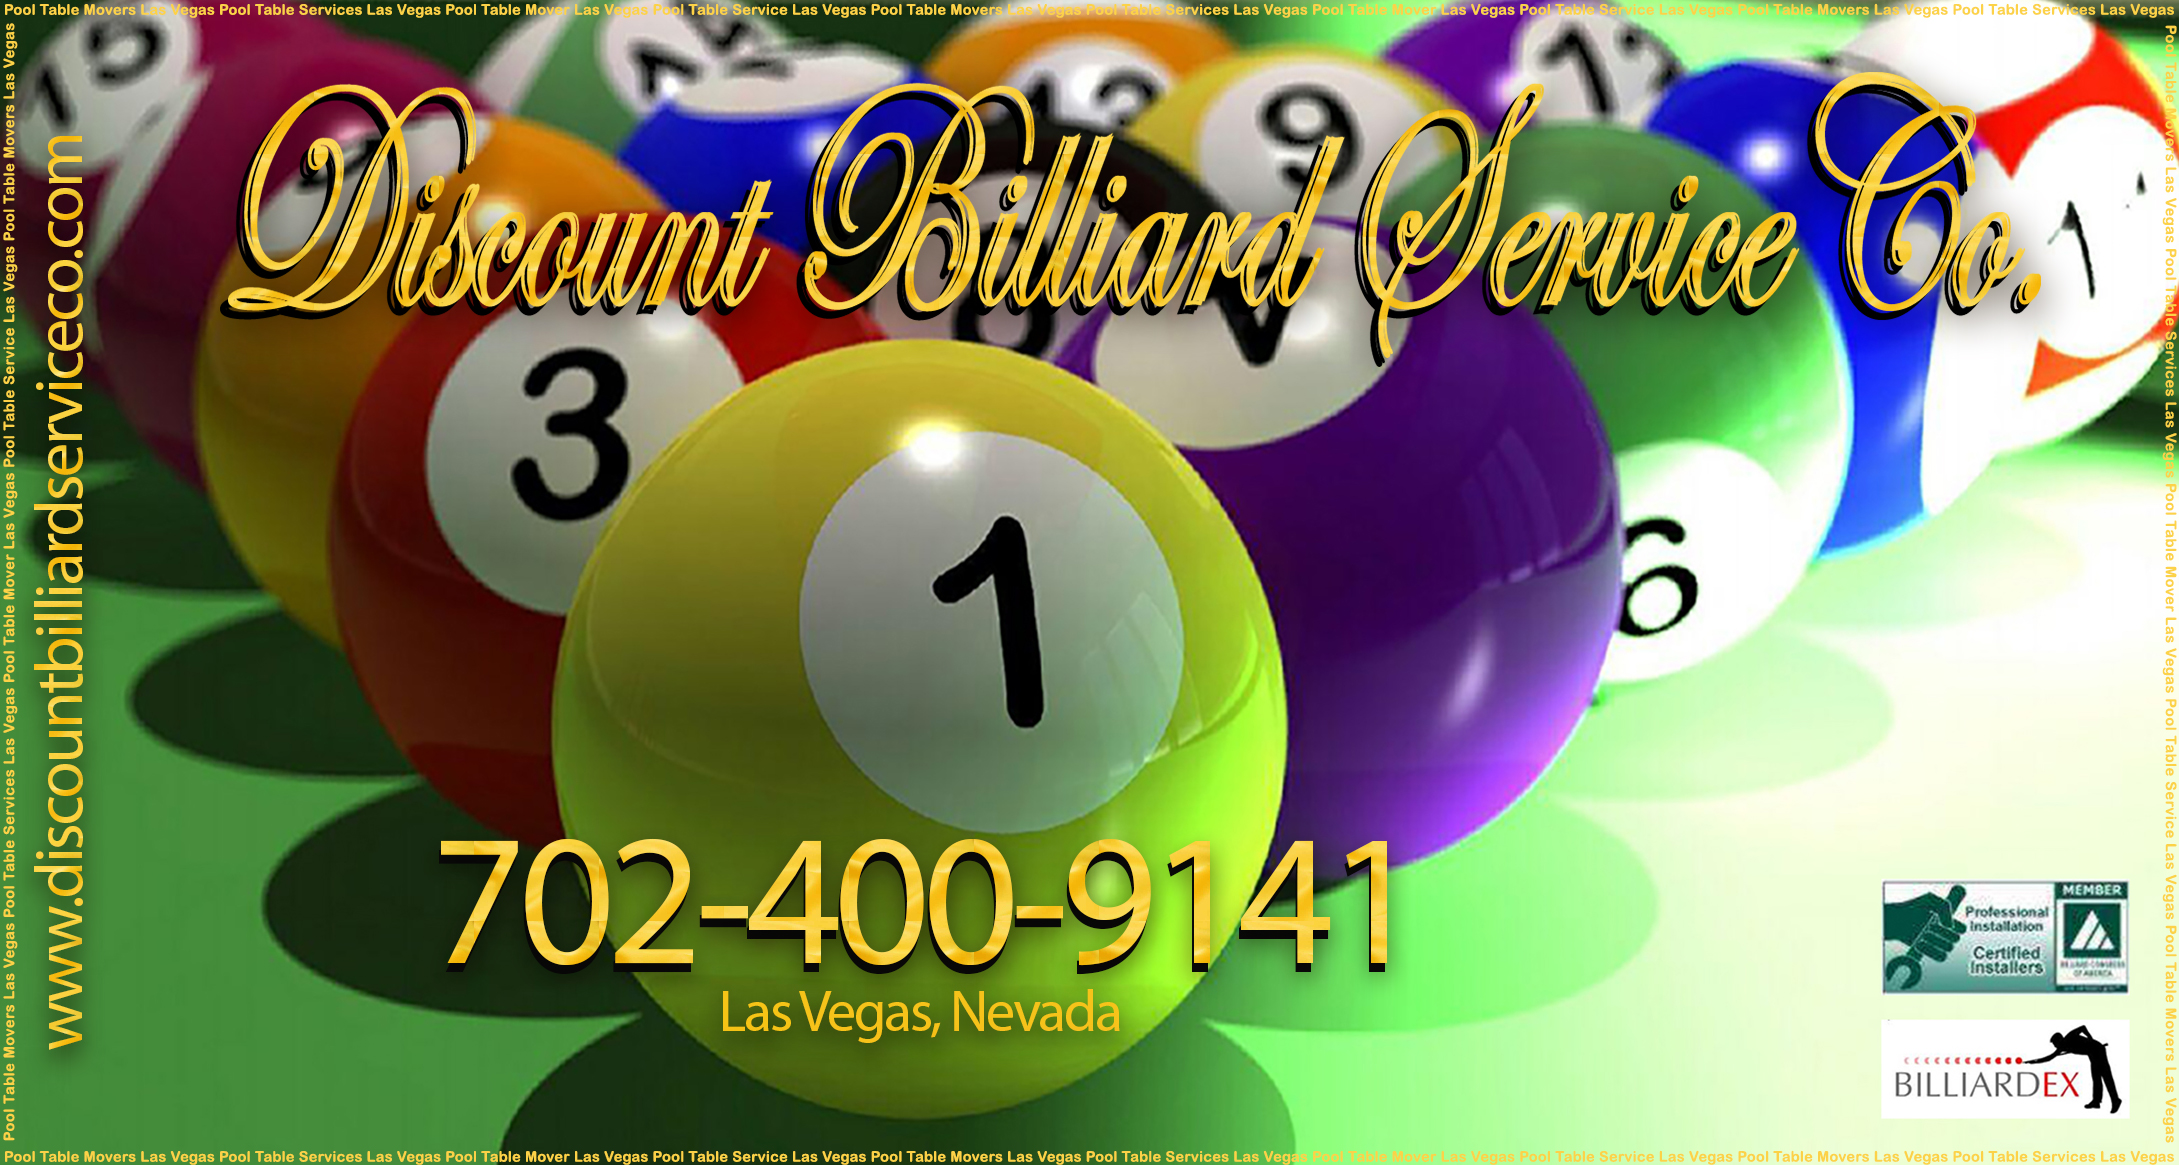 Discount Billiard Services - Pool table delivery service